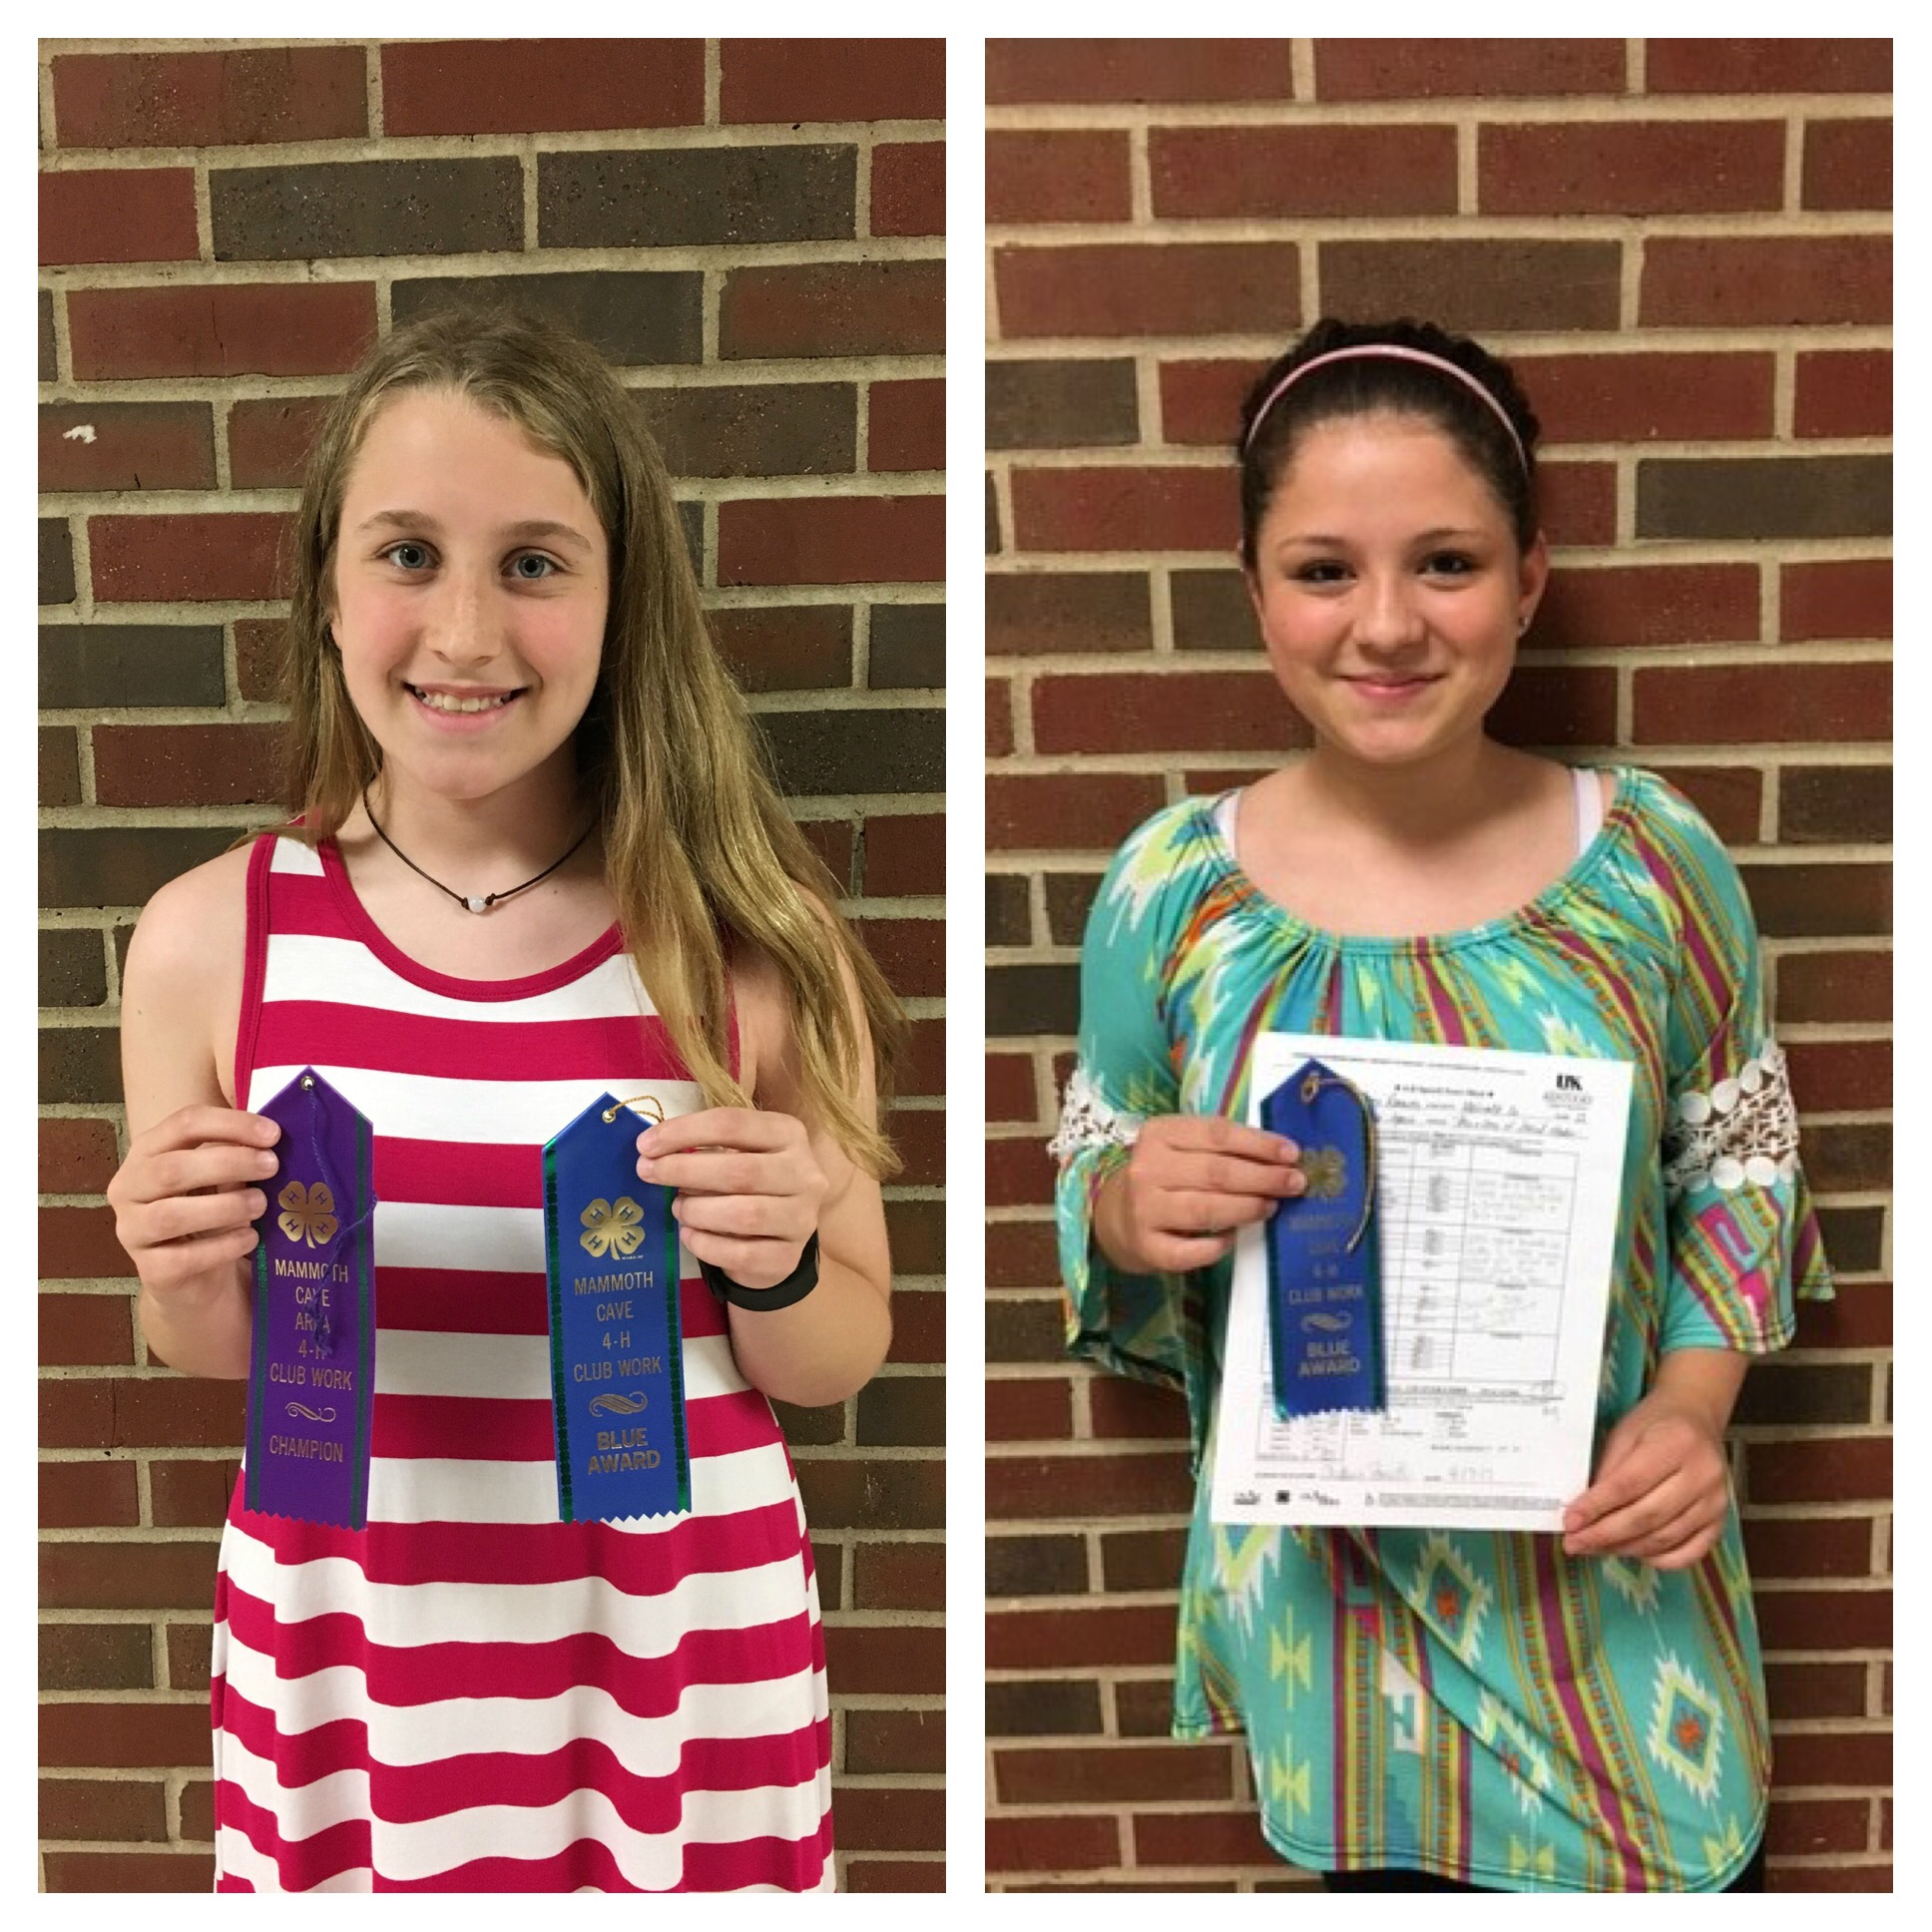 Students who placed at 4H Mammoth Cave Communications Night